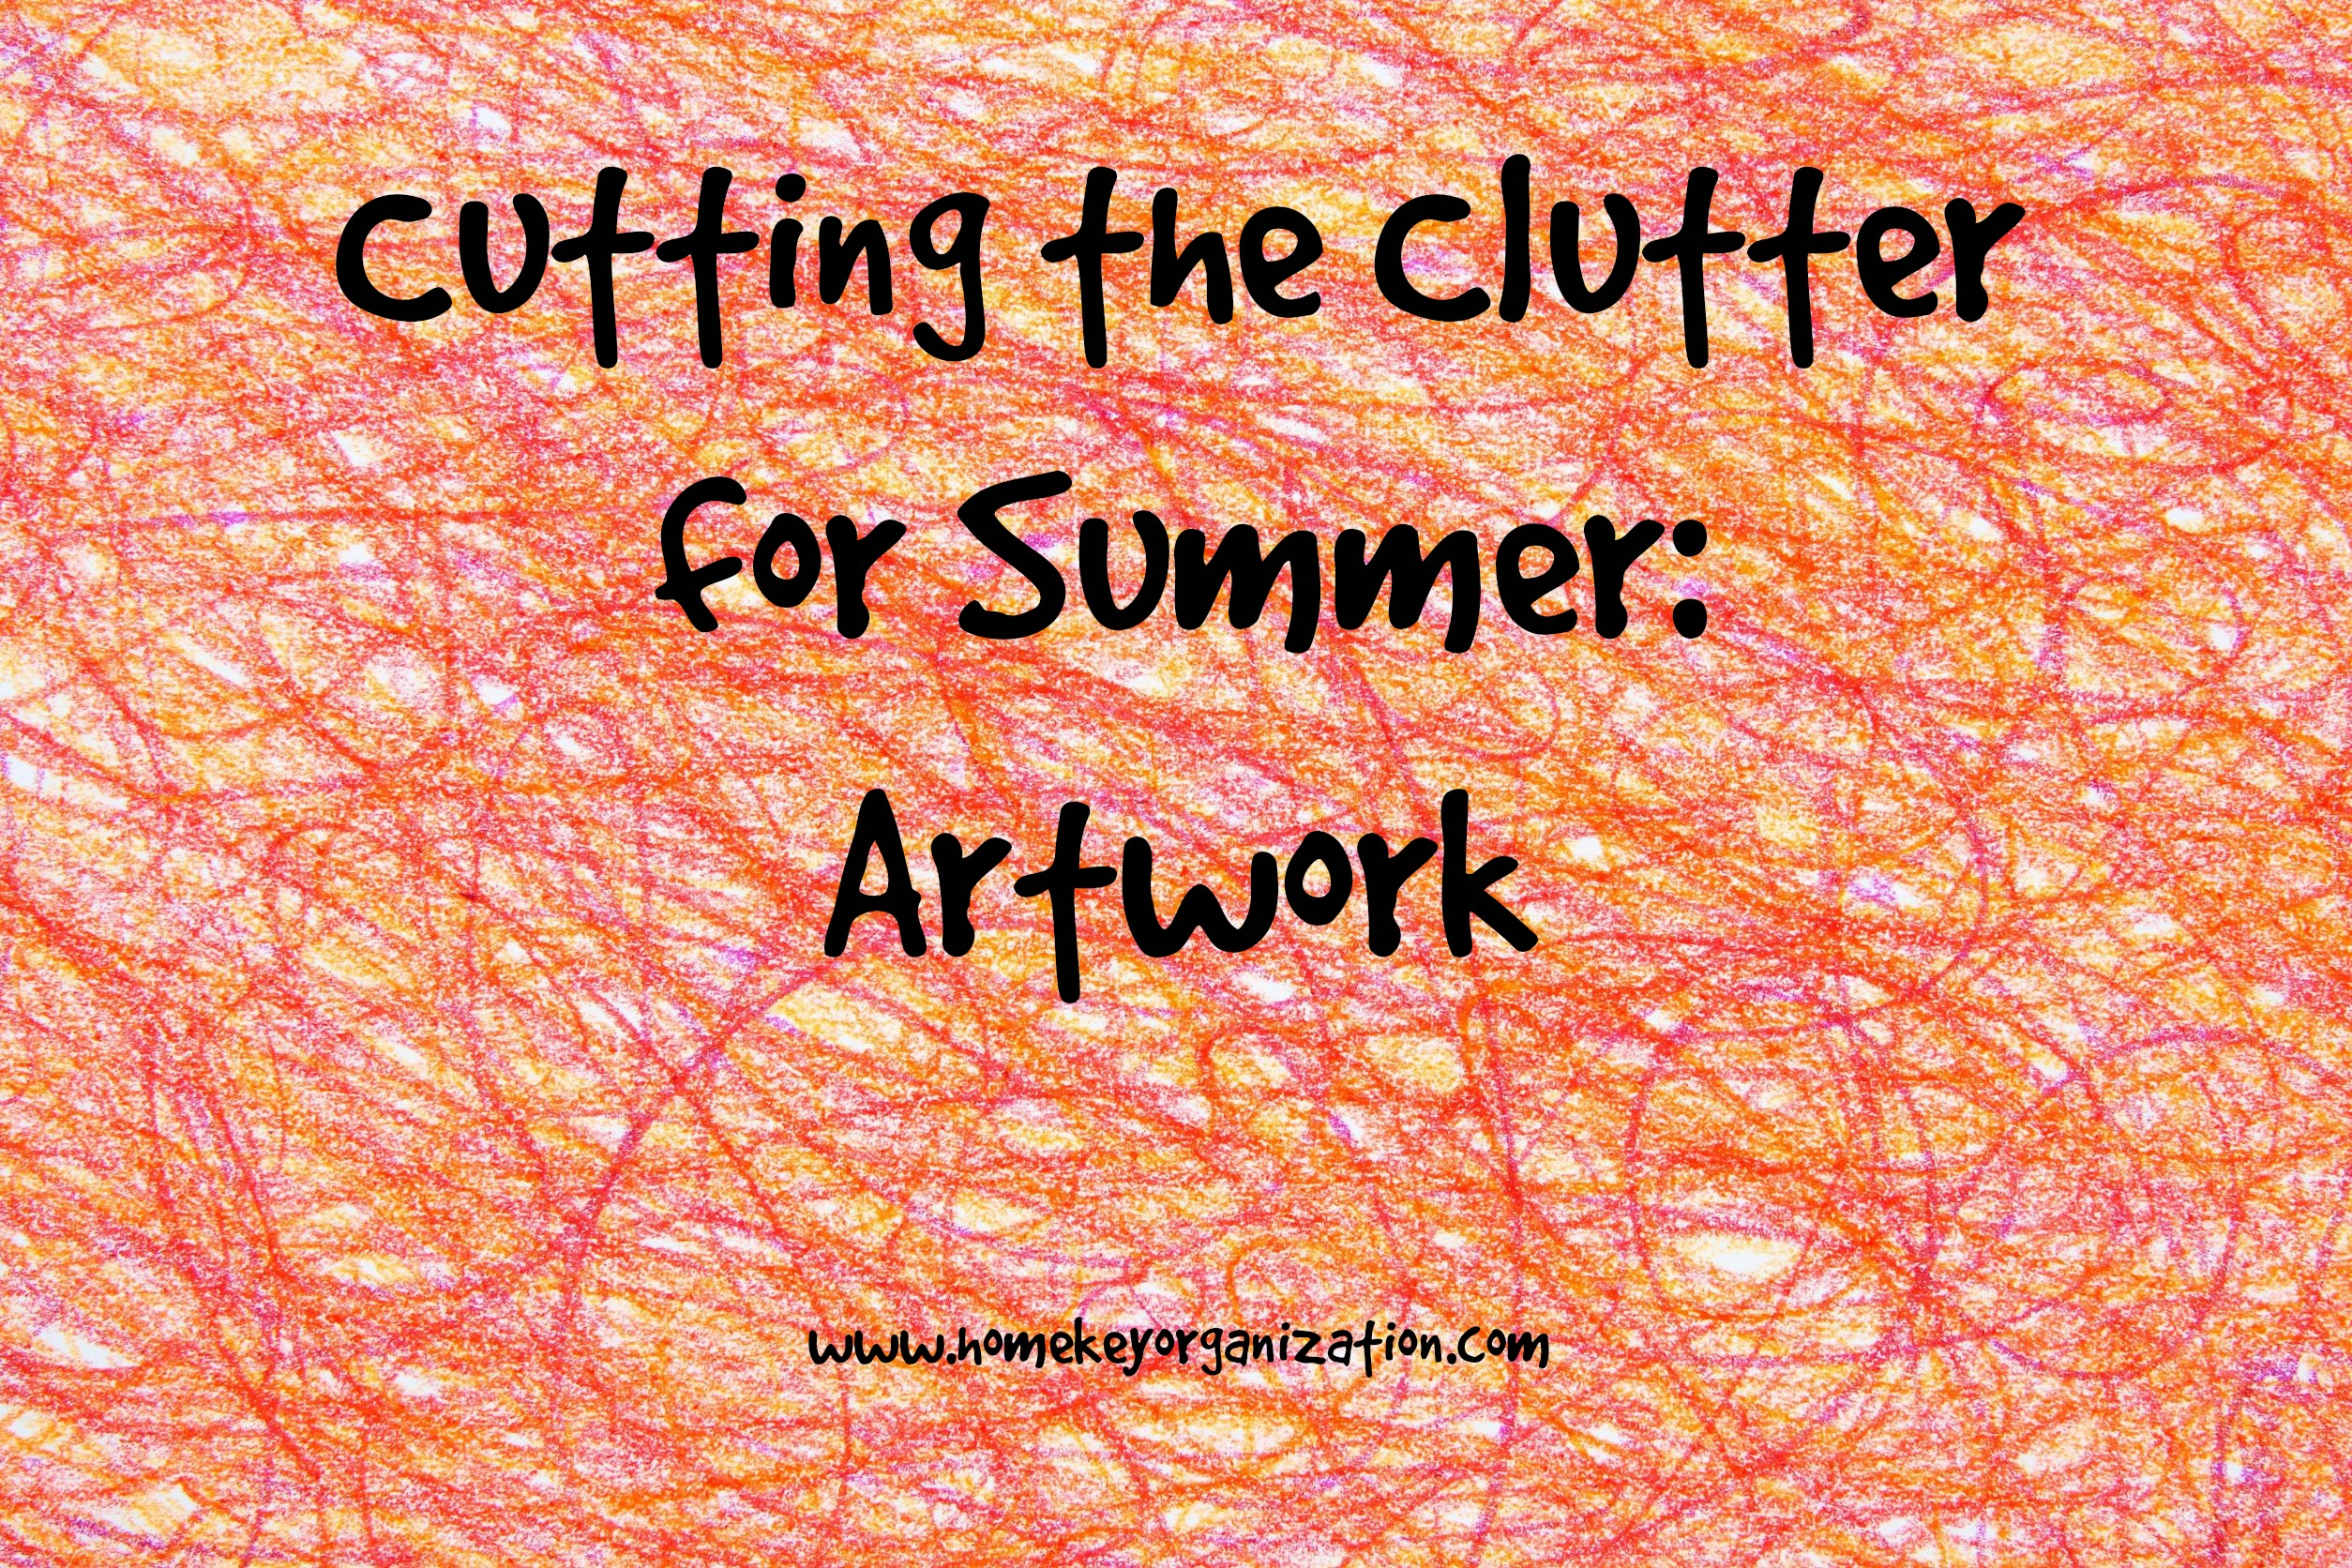 Cutting the Clutter for Summer – Artwork